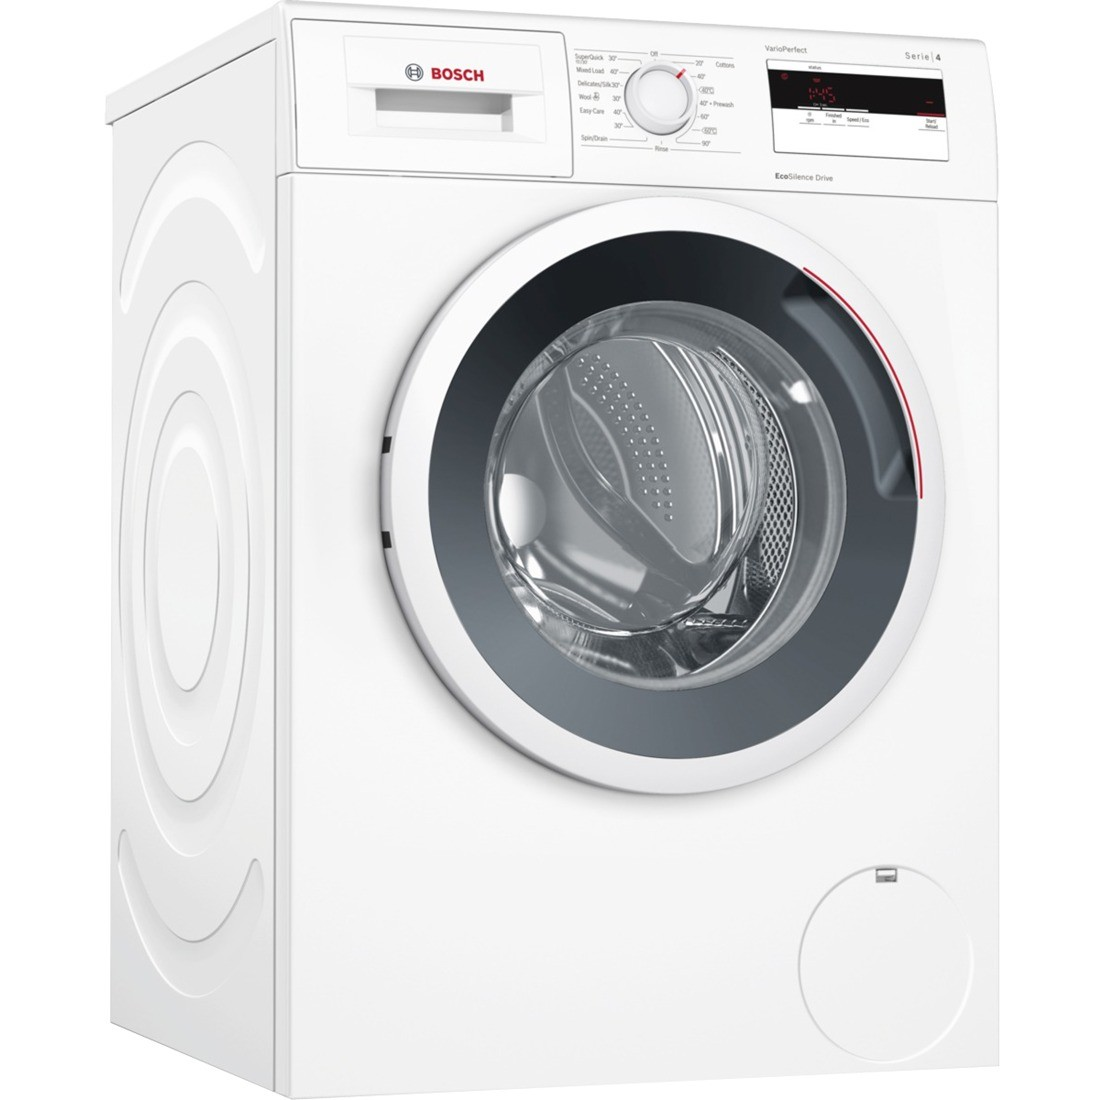 Bosch WAN24100GB 7kg 1400 Spin Washing Machine - White - A+++ Rated